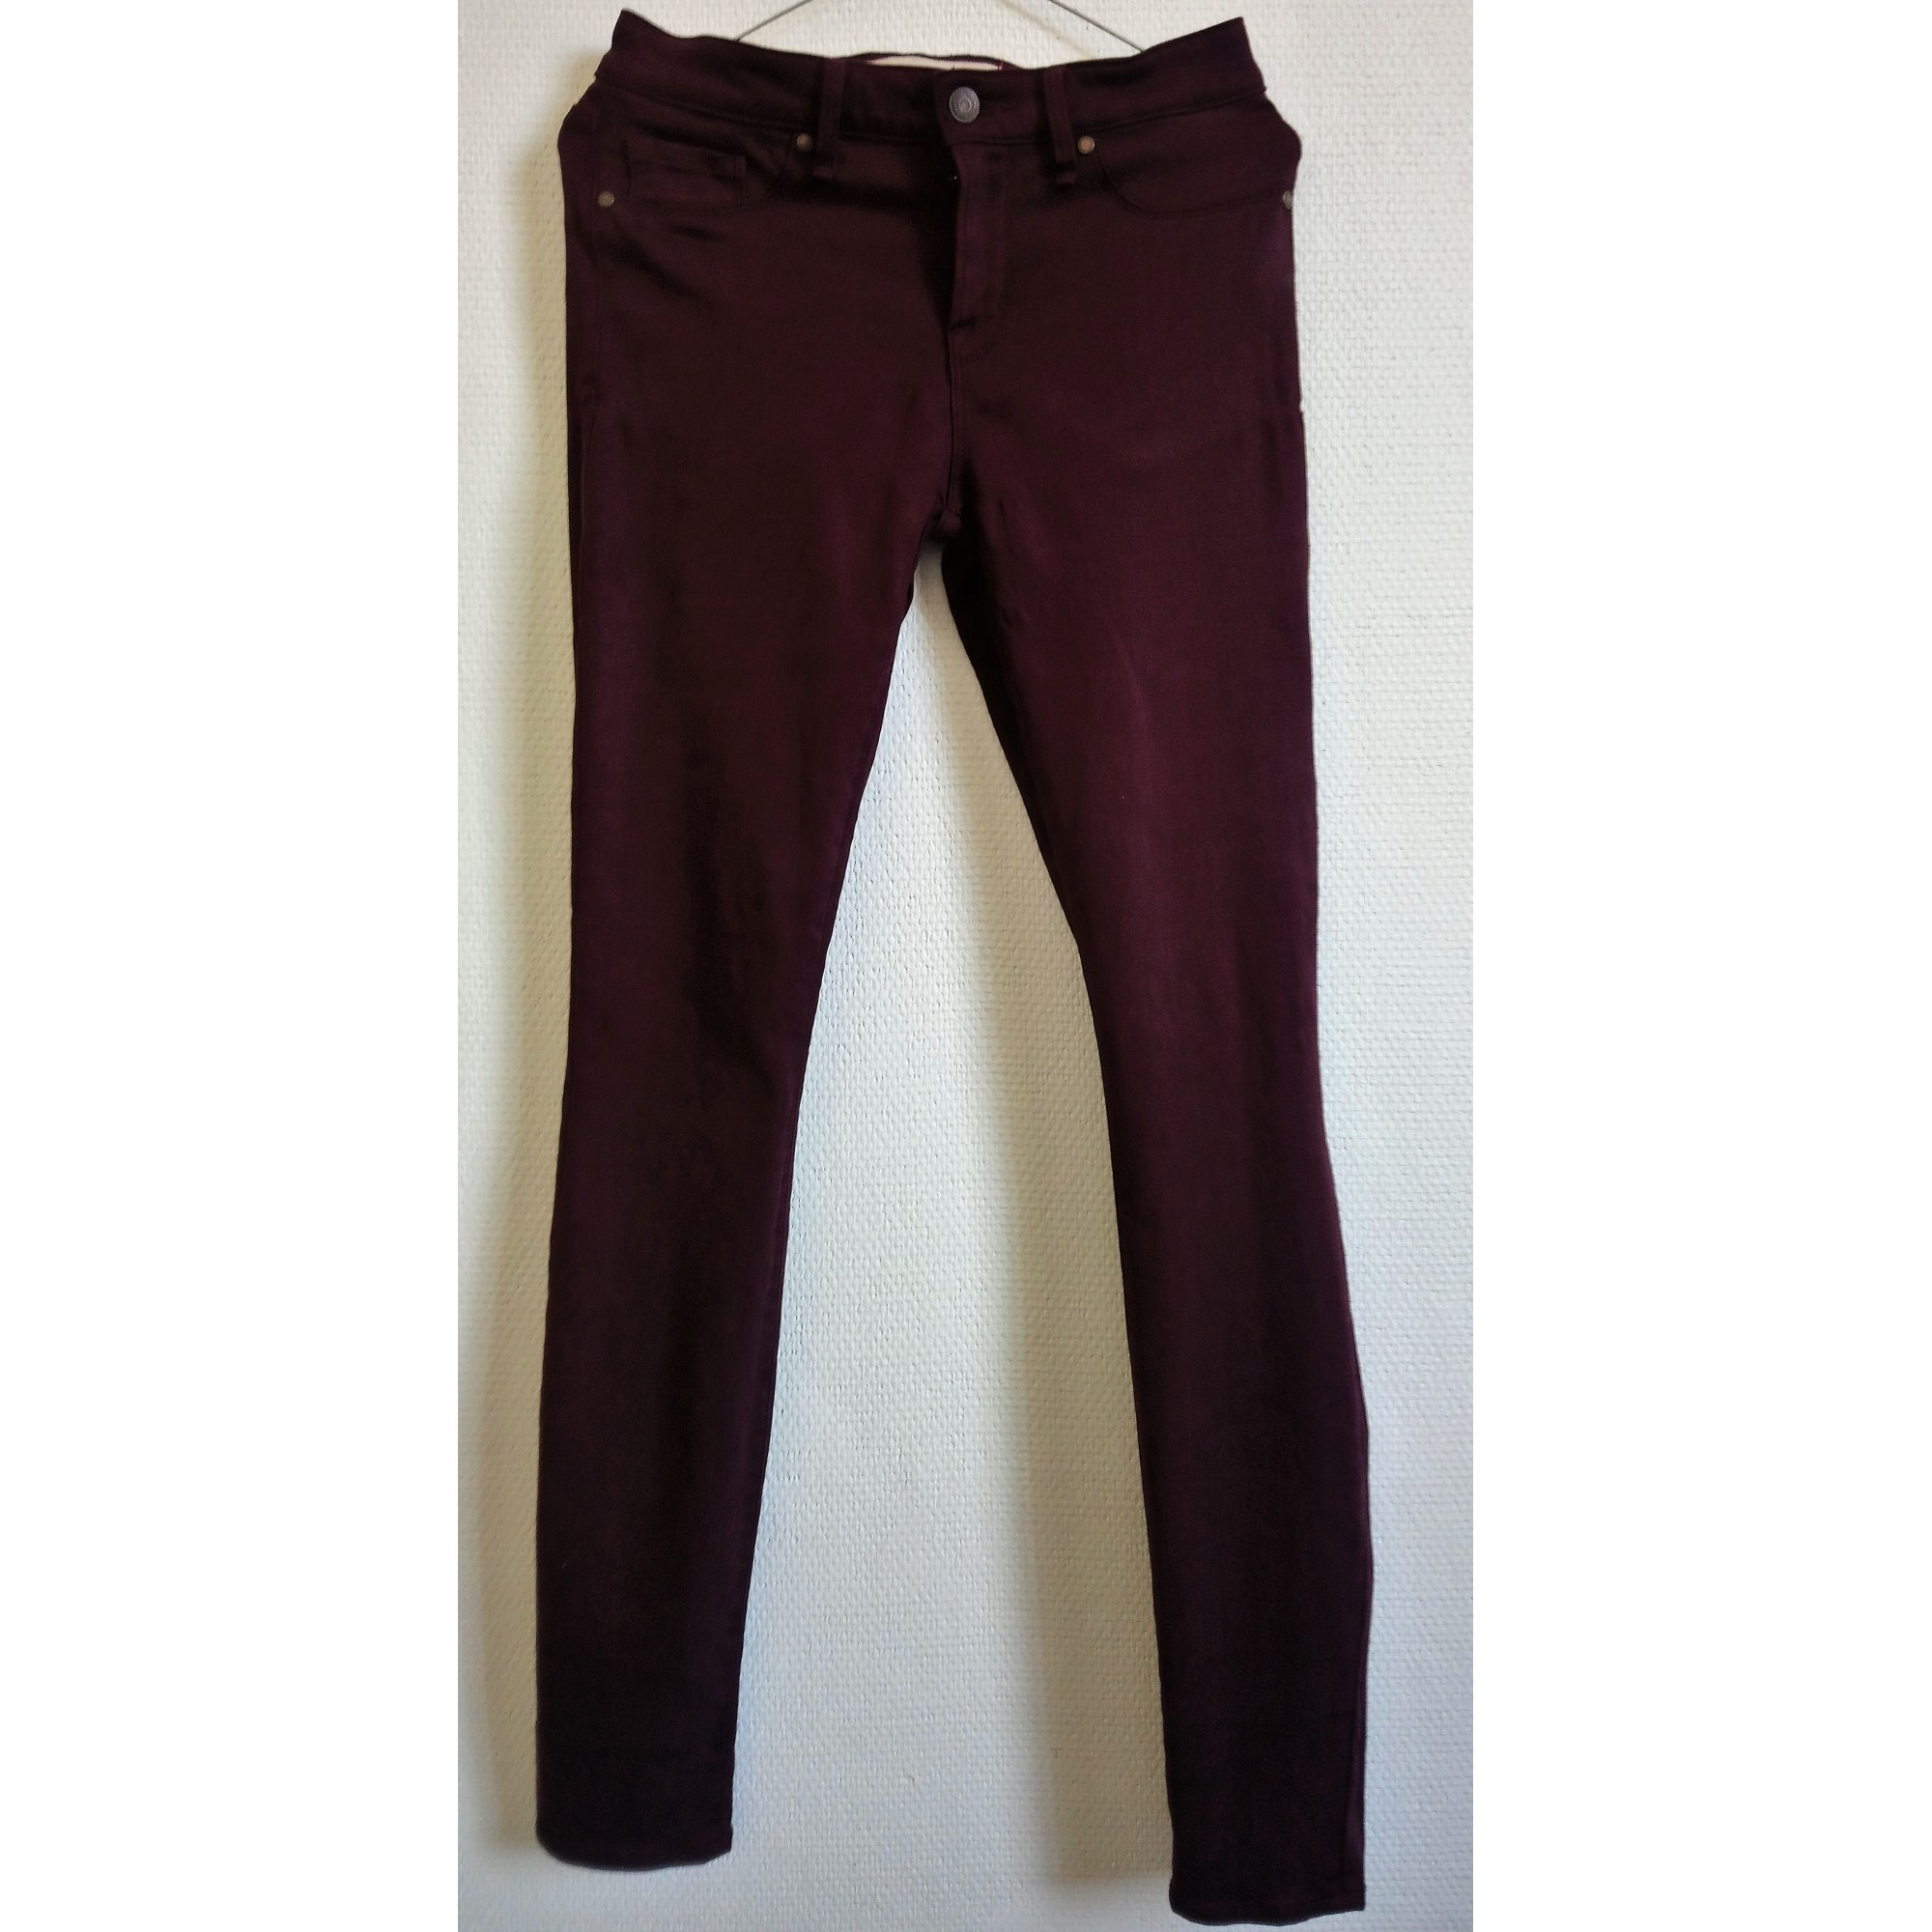 Jeans slim MARC JACOBS Rouge, bordeaux